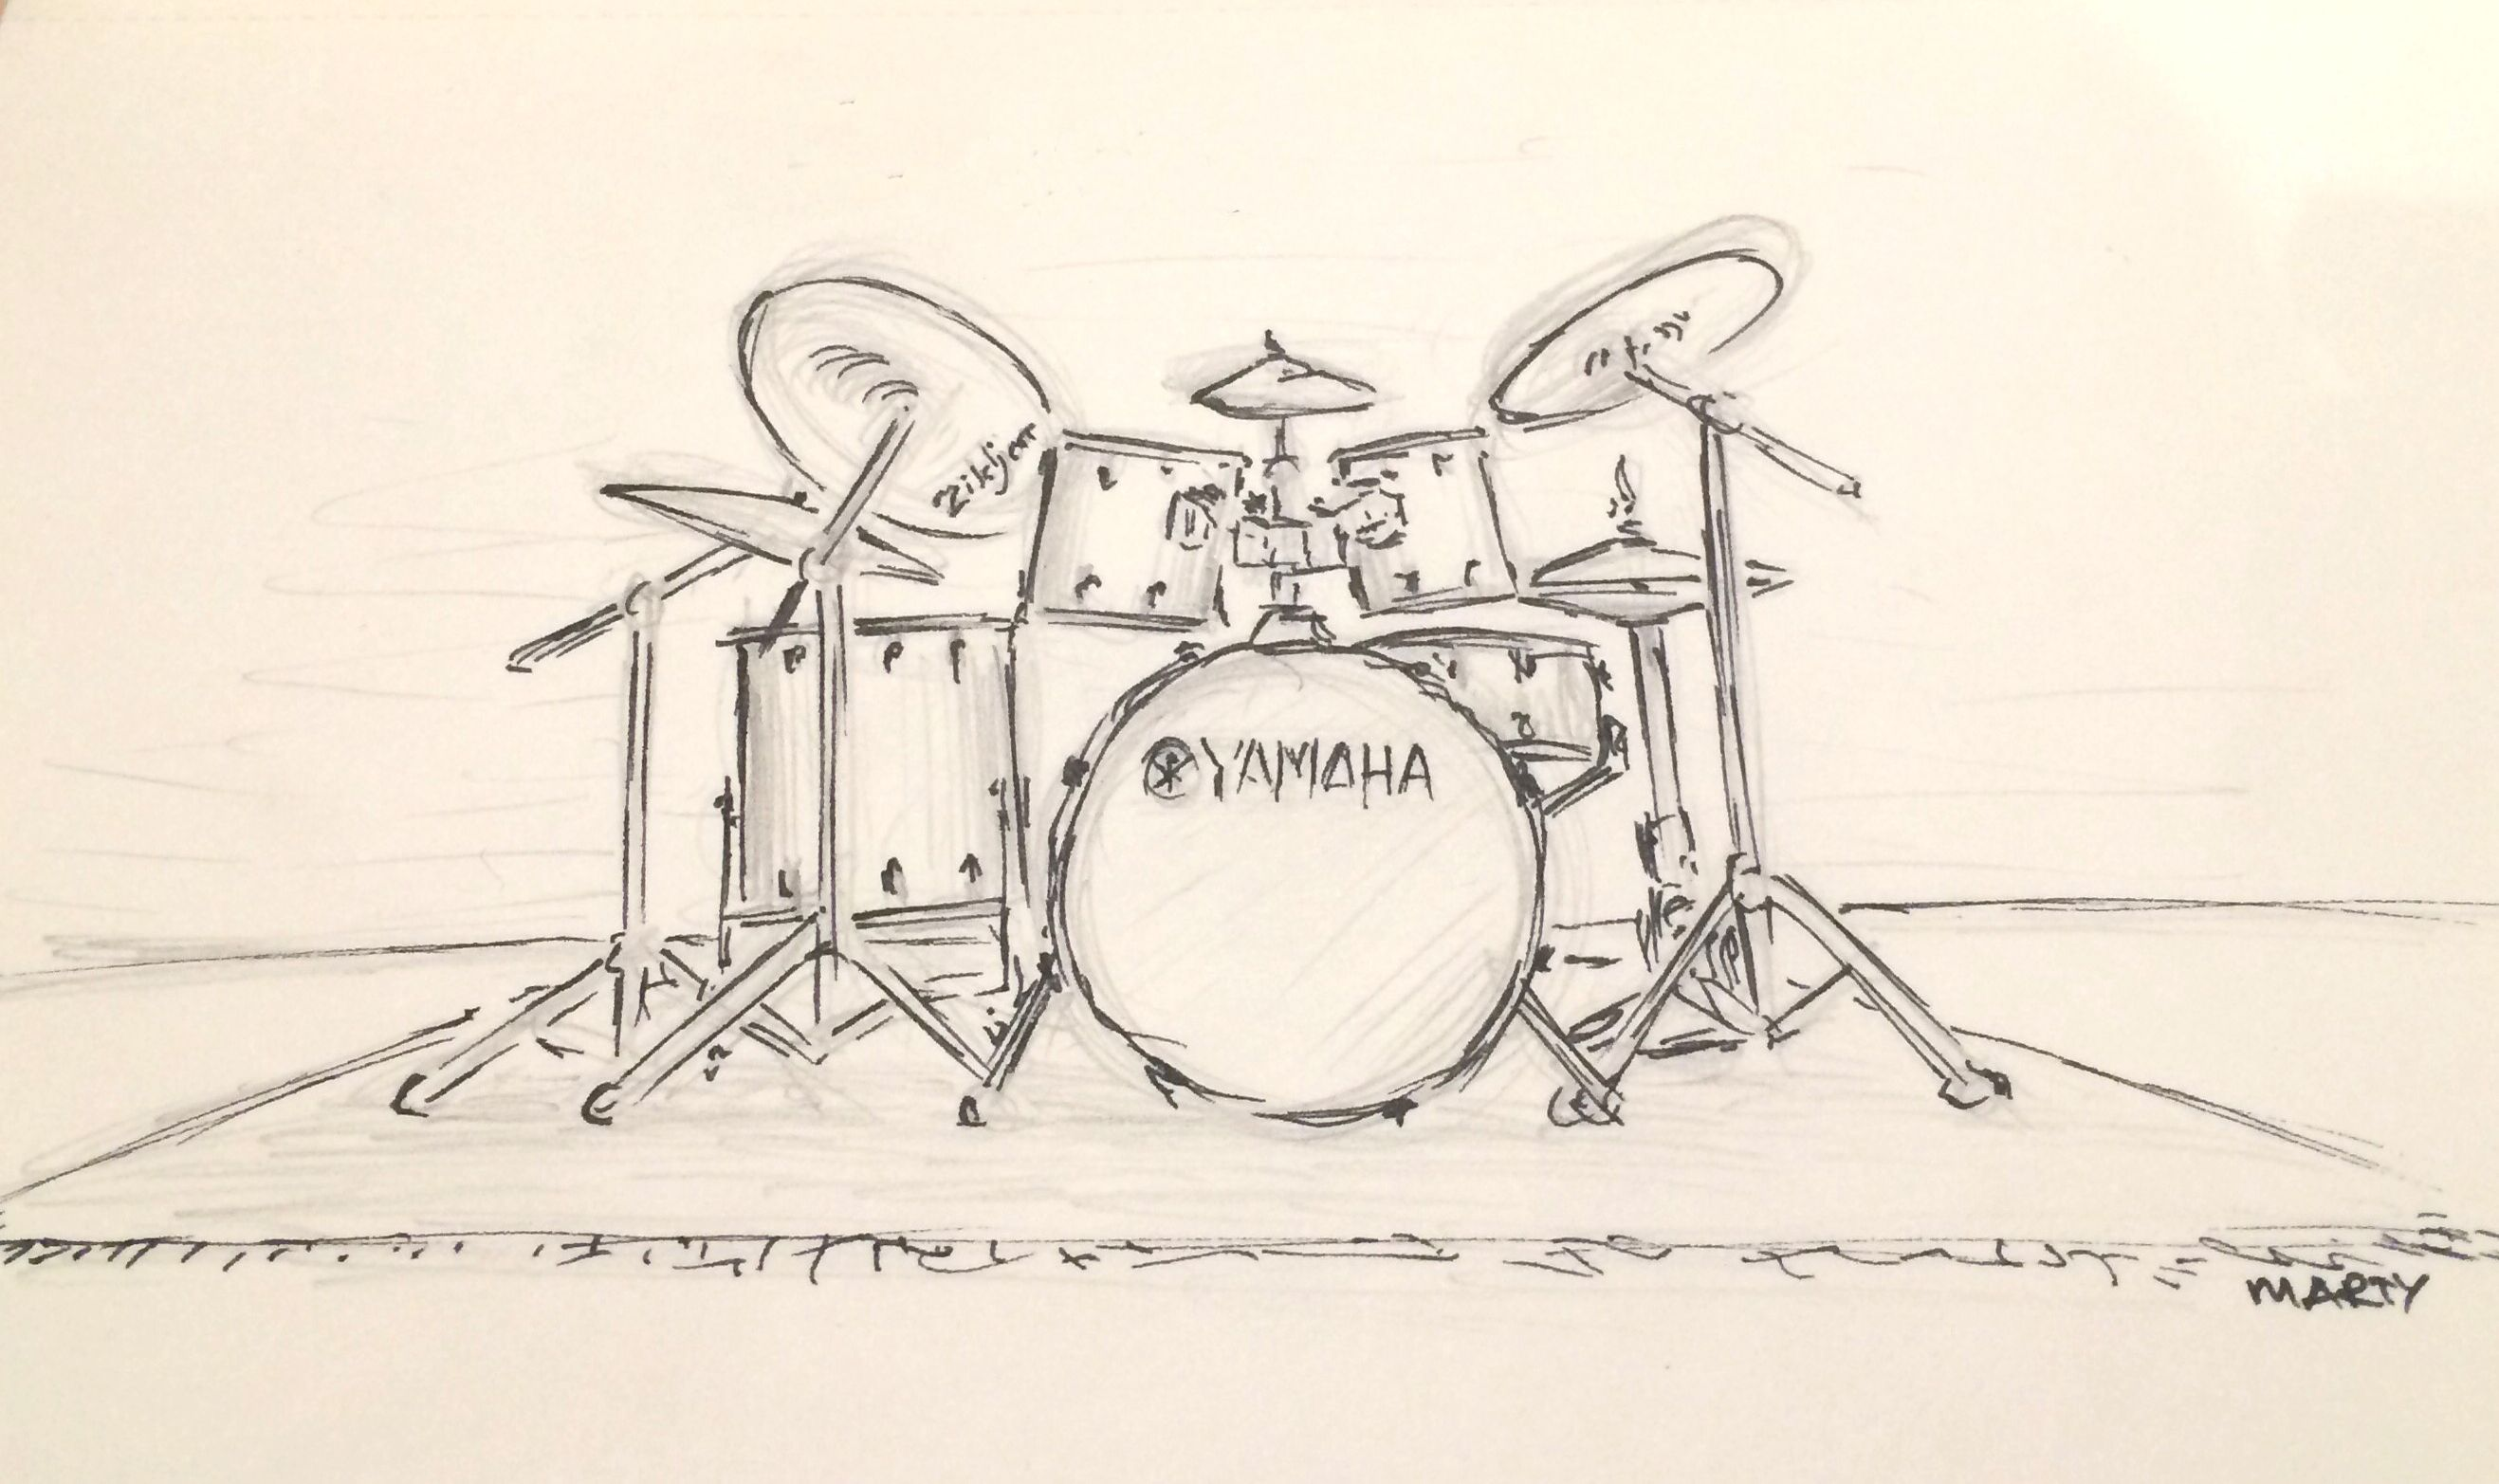 Just a quick pencil and ink sketch of a drum kit    Art